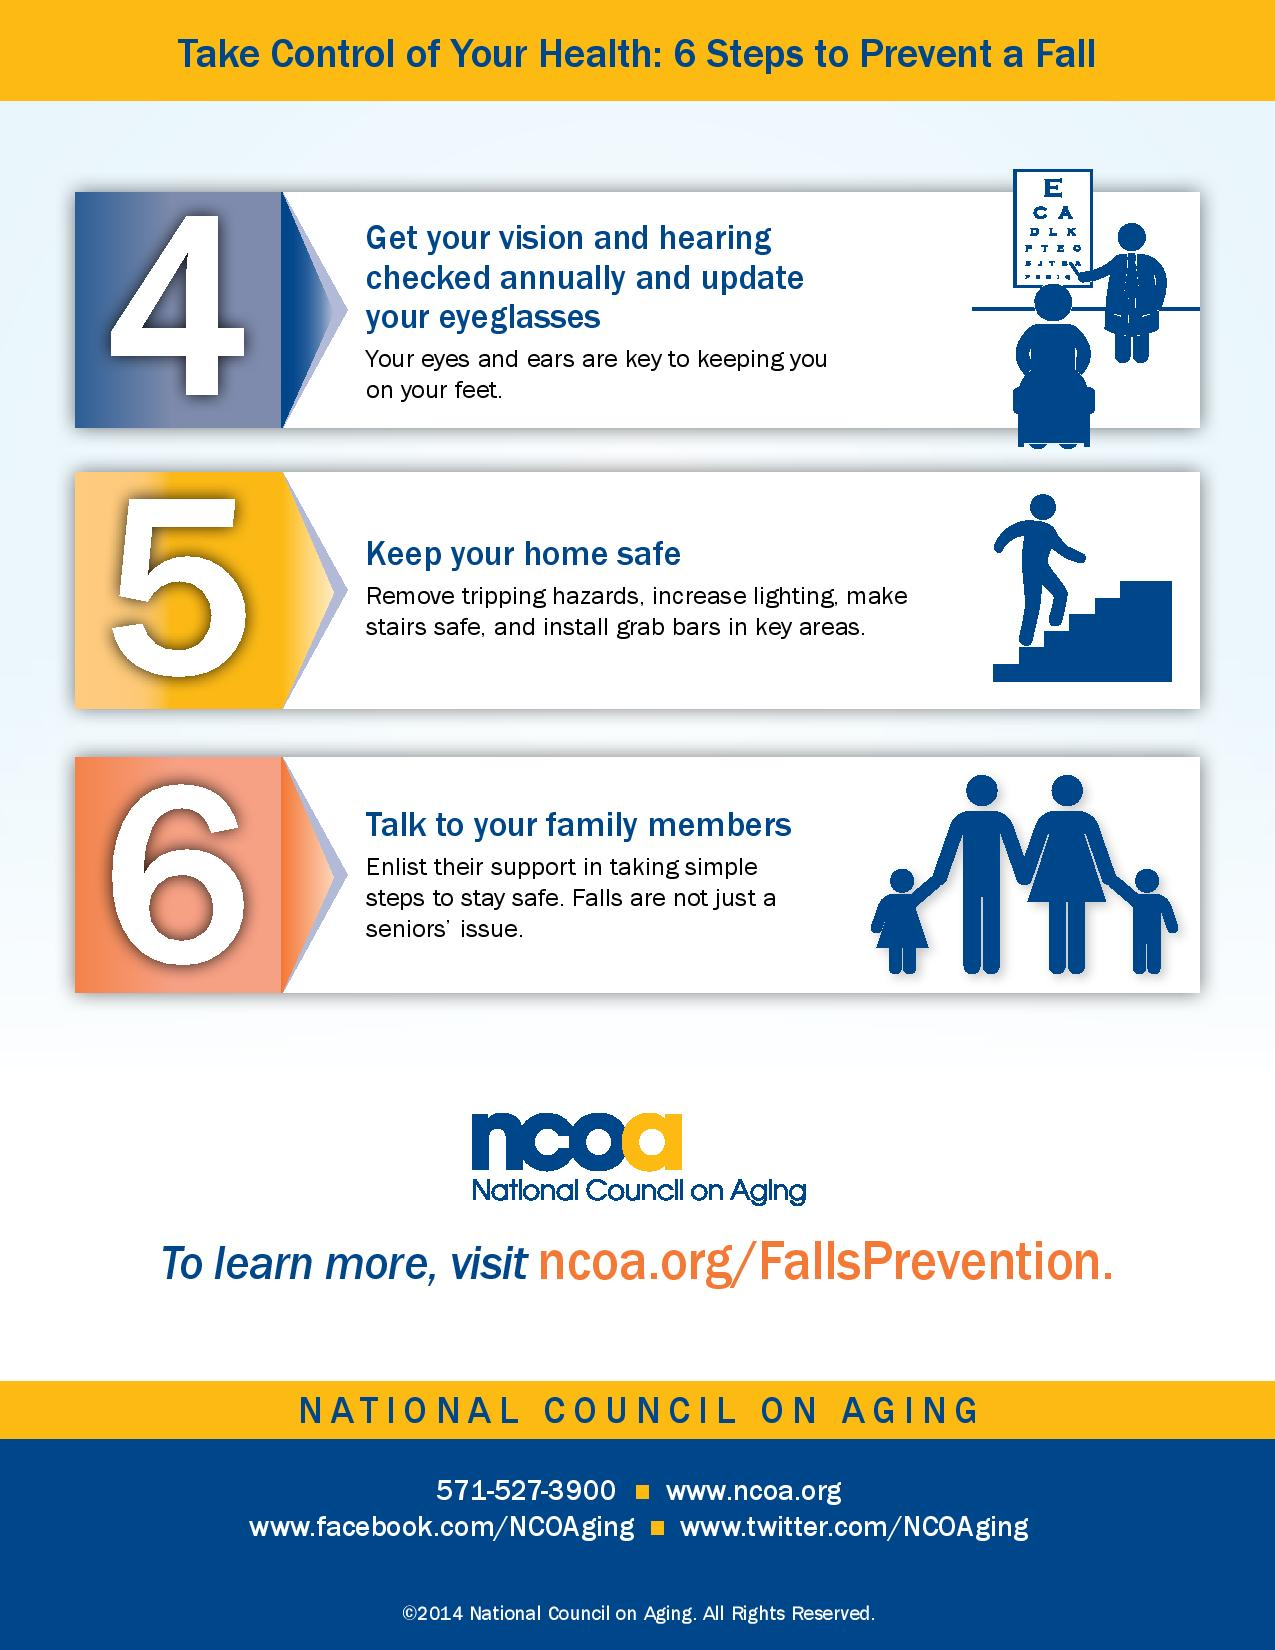 6 steps to prevent a fall infographic page 2